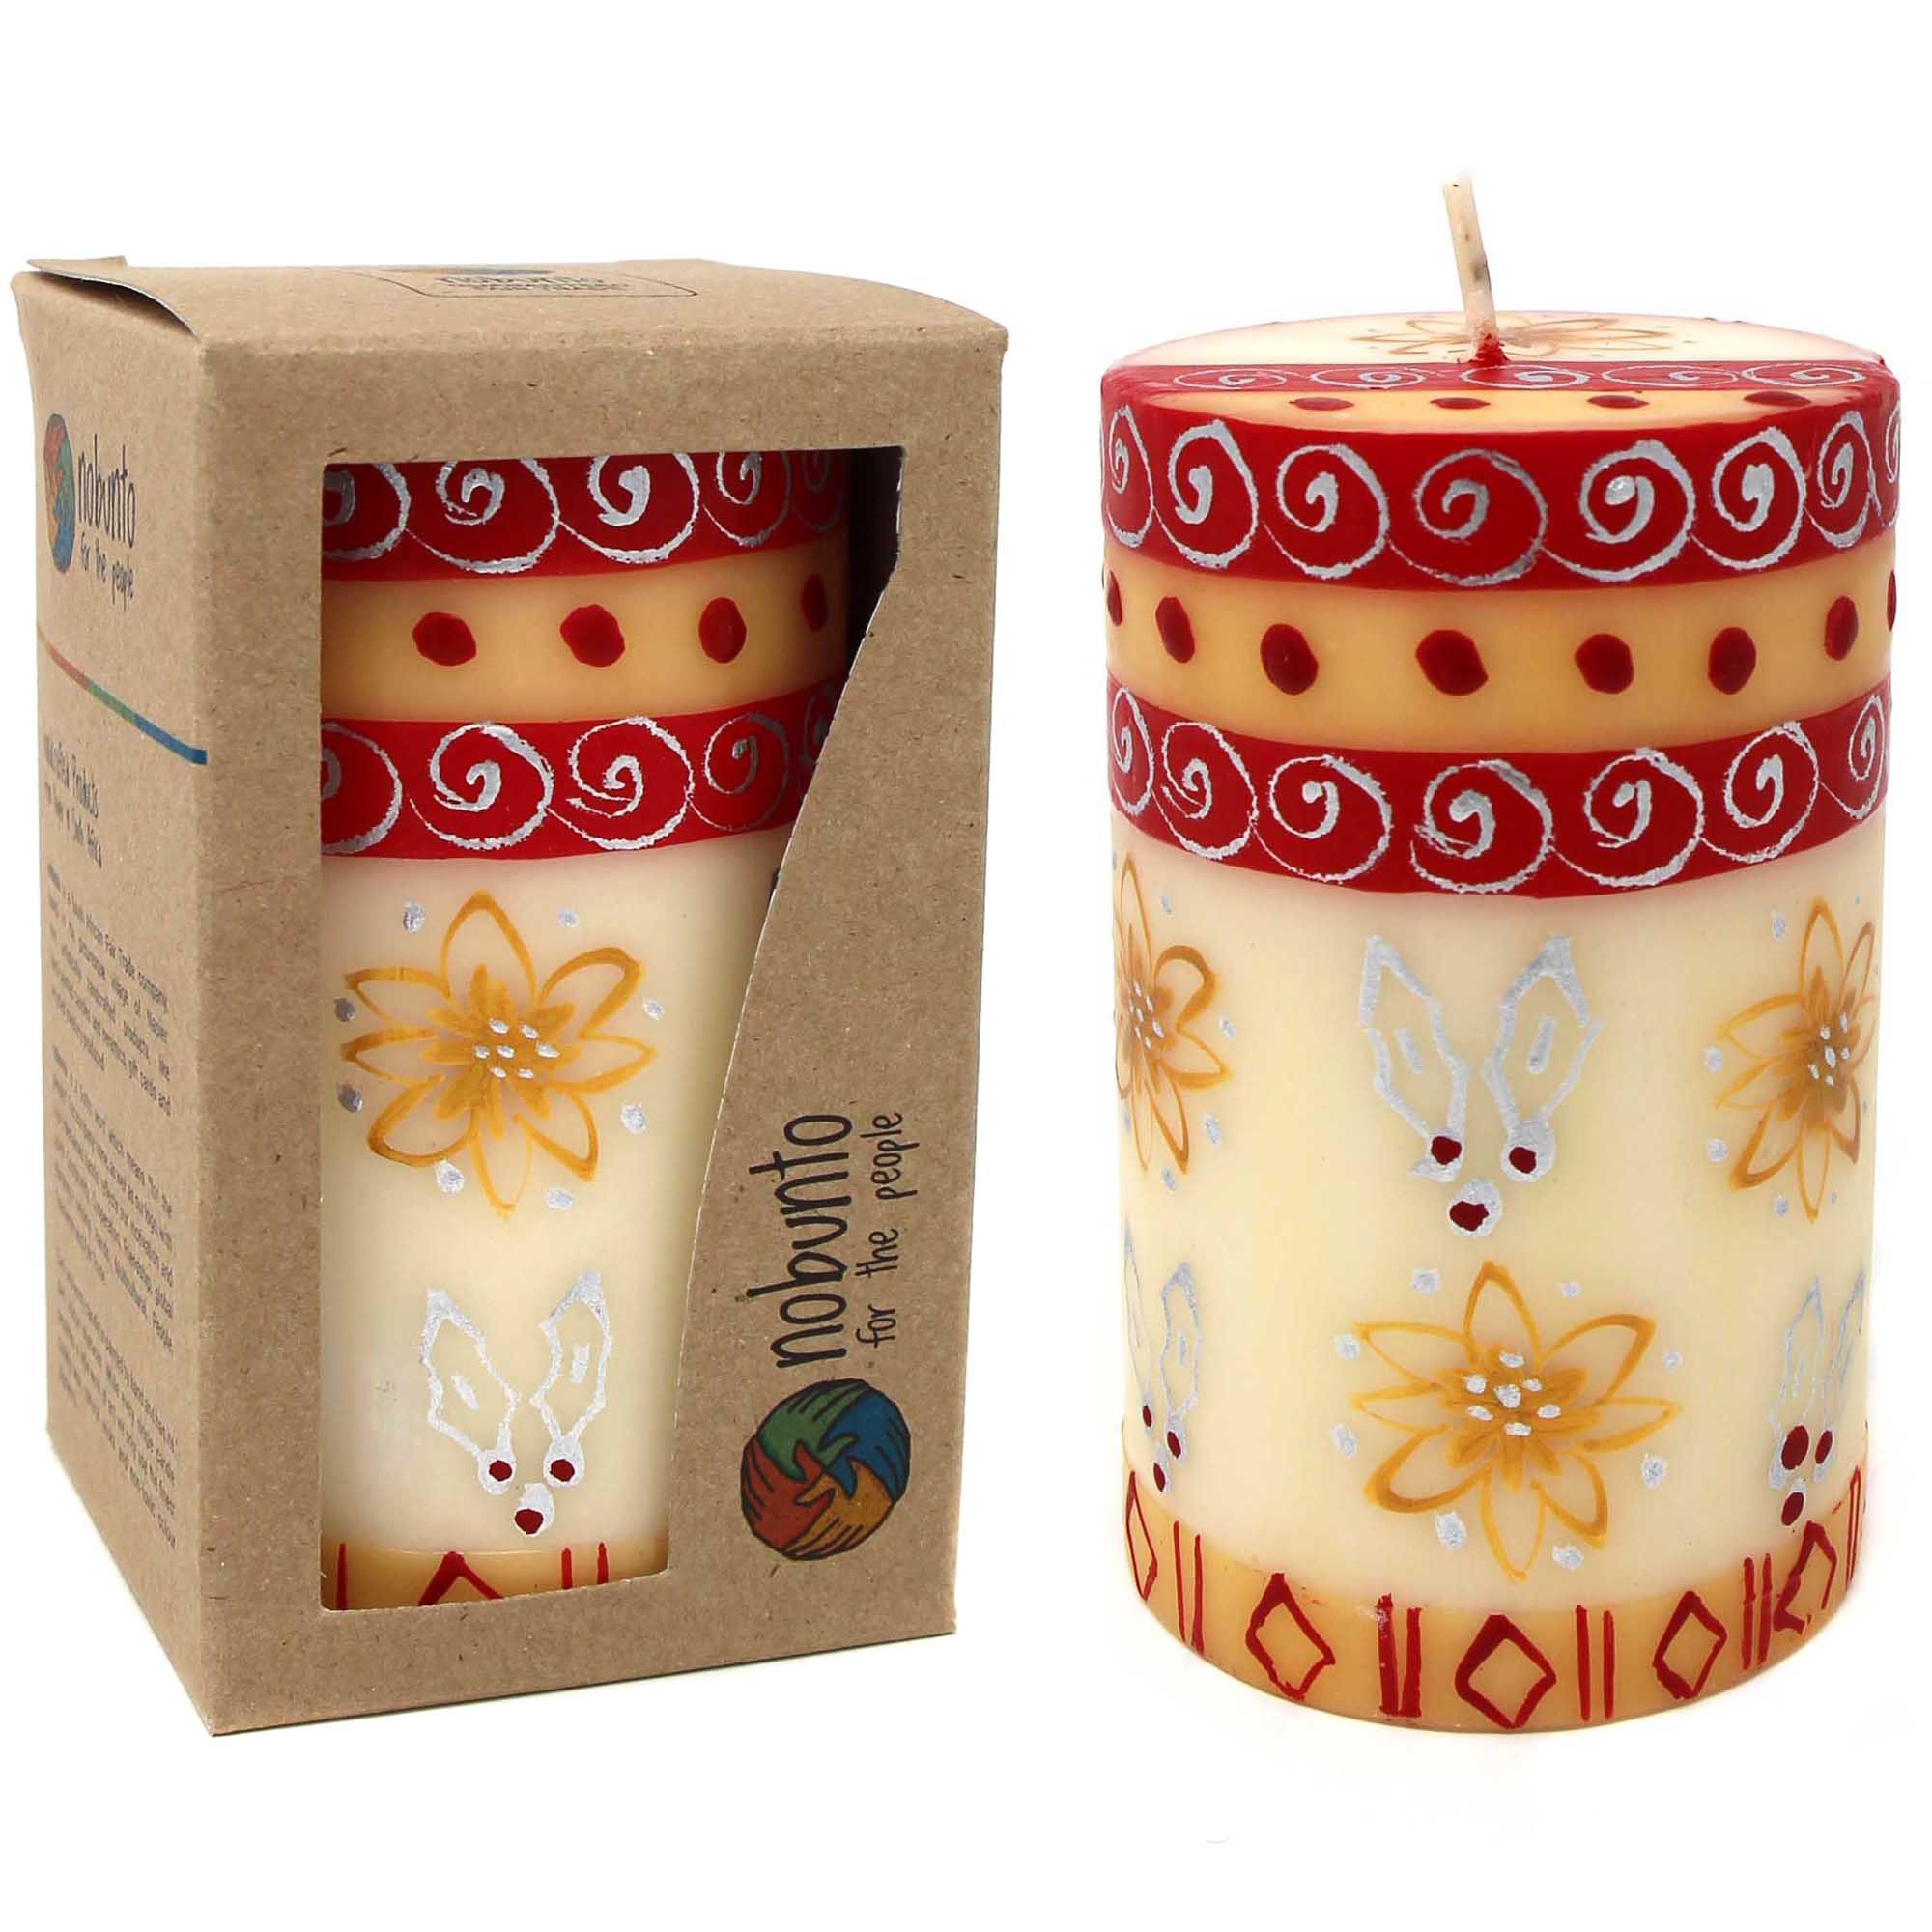 Unscented Christmas Handpainted Pillar Candle in Gift Box, 4-inch (Kimeta Design)